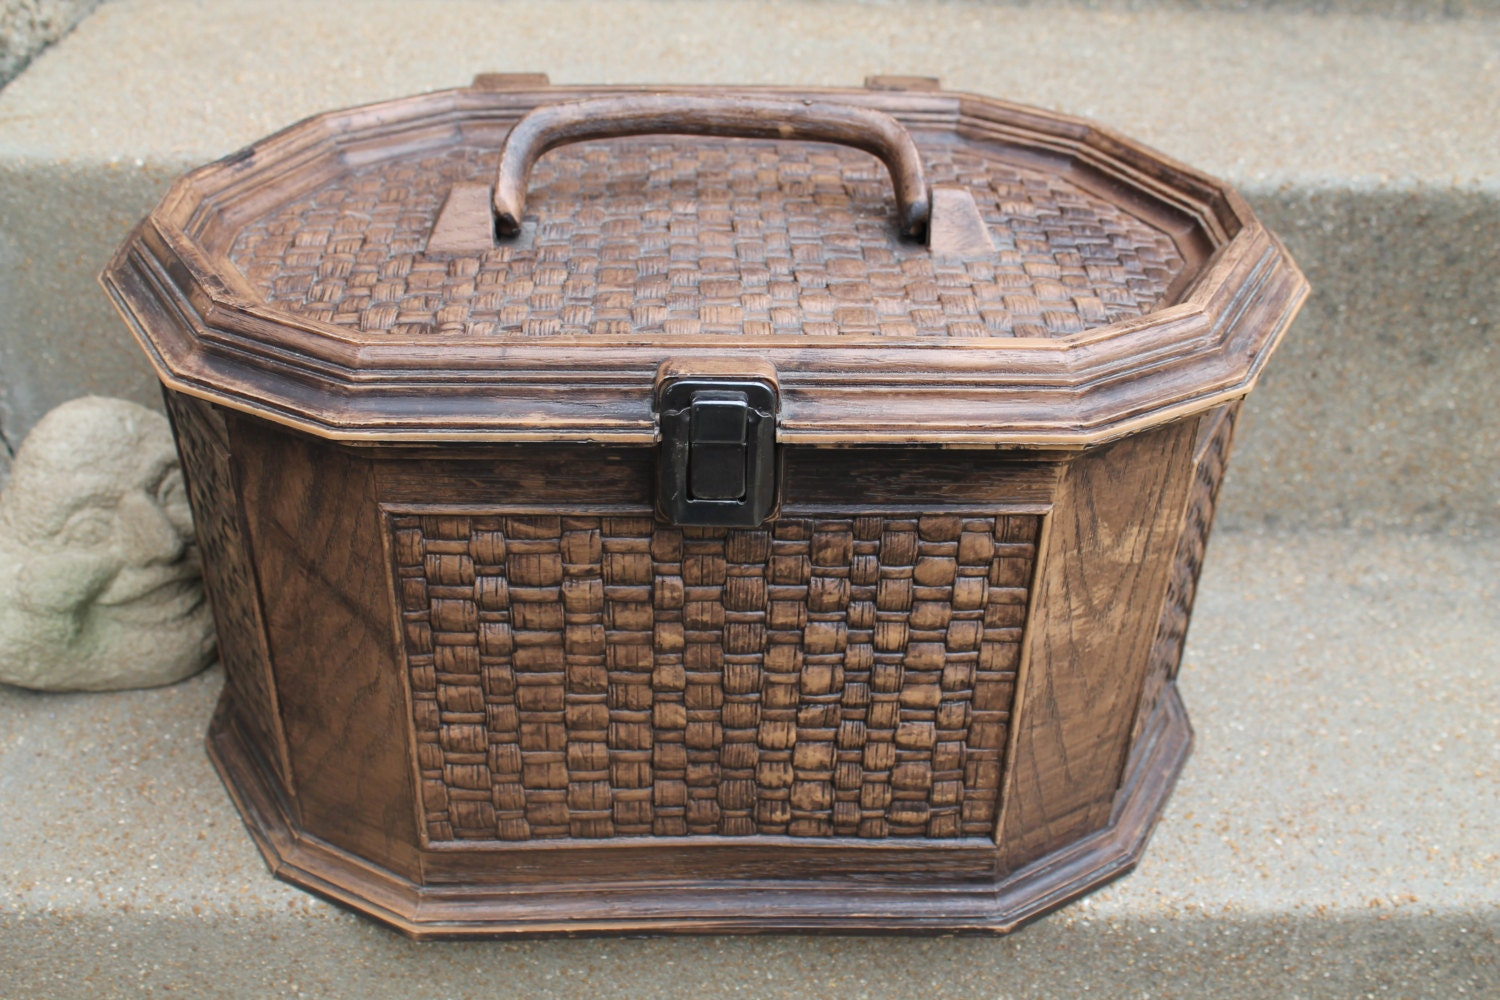 Wood Basket Weaving Supplies : Lerner sewing box faux wood carved and basket weave look with